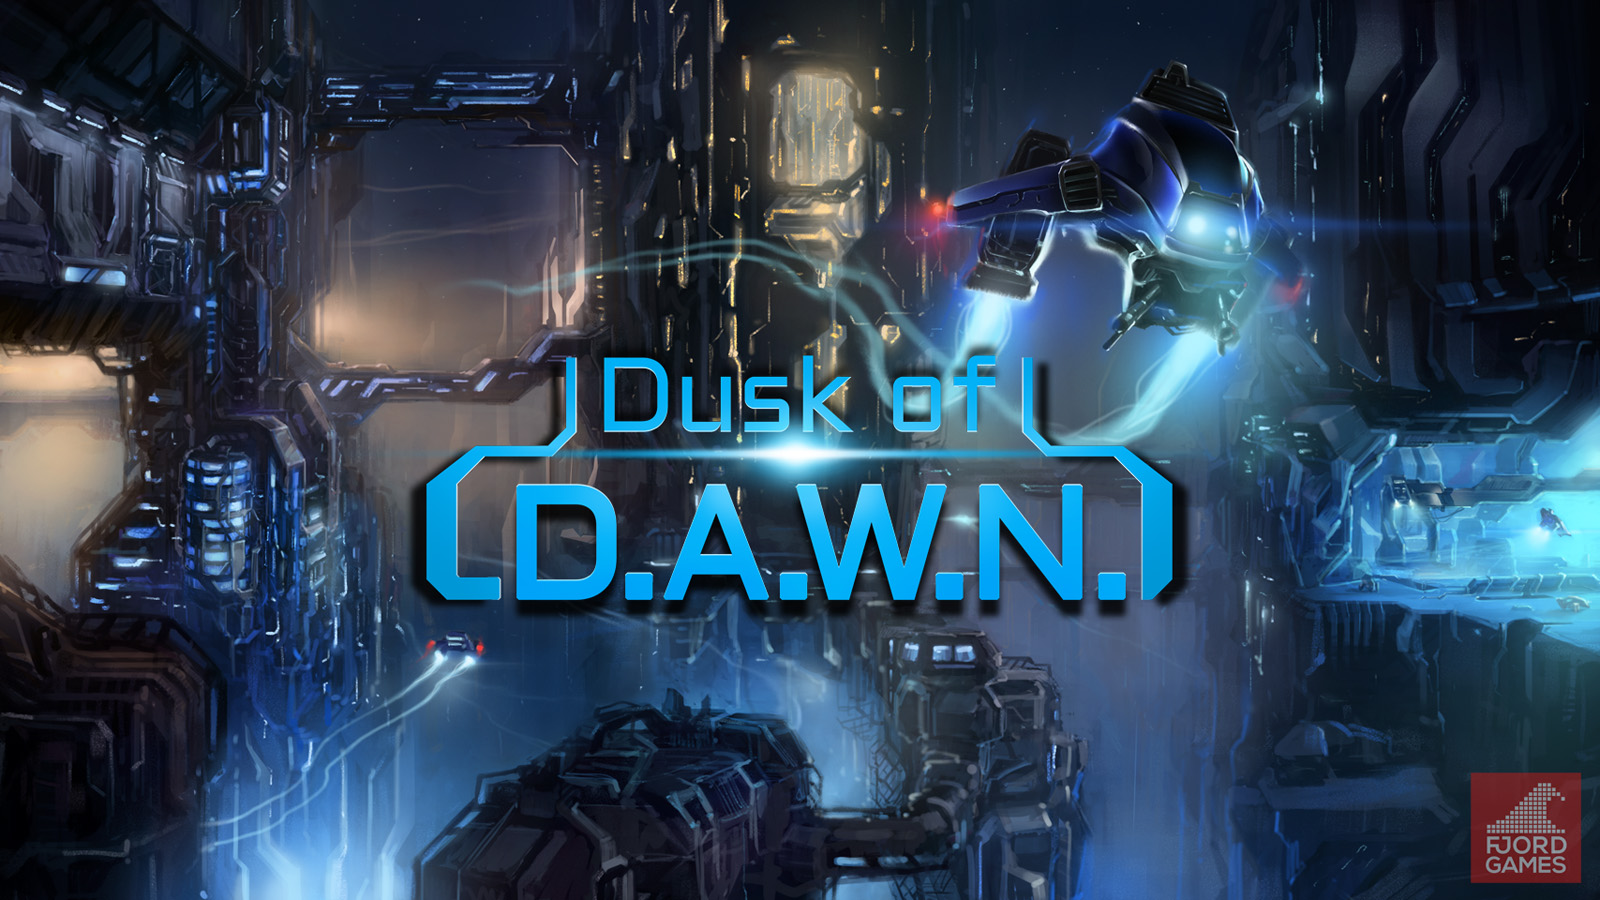 dusk-of-dawn_gametitle_promo